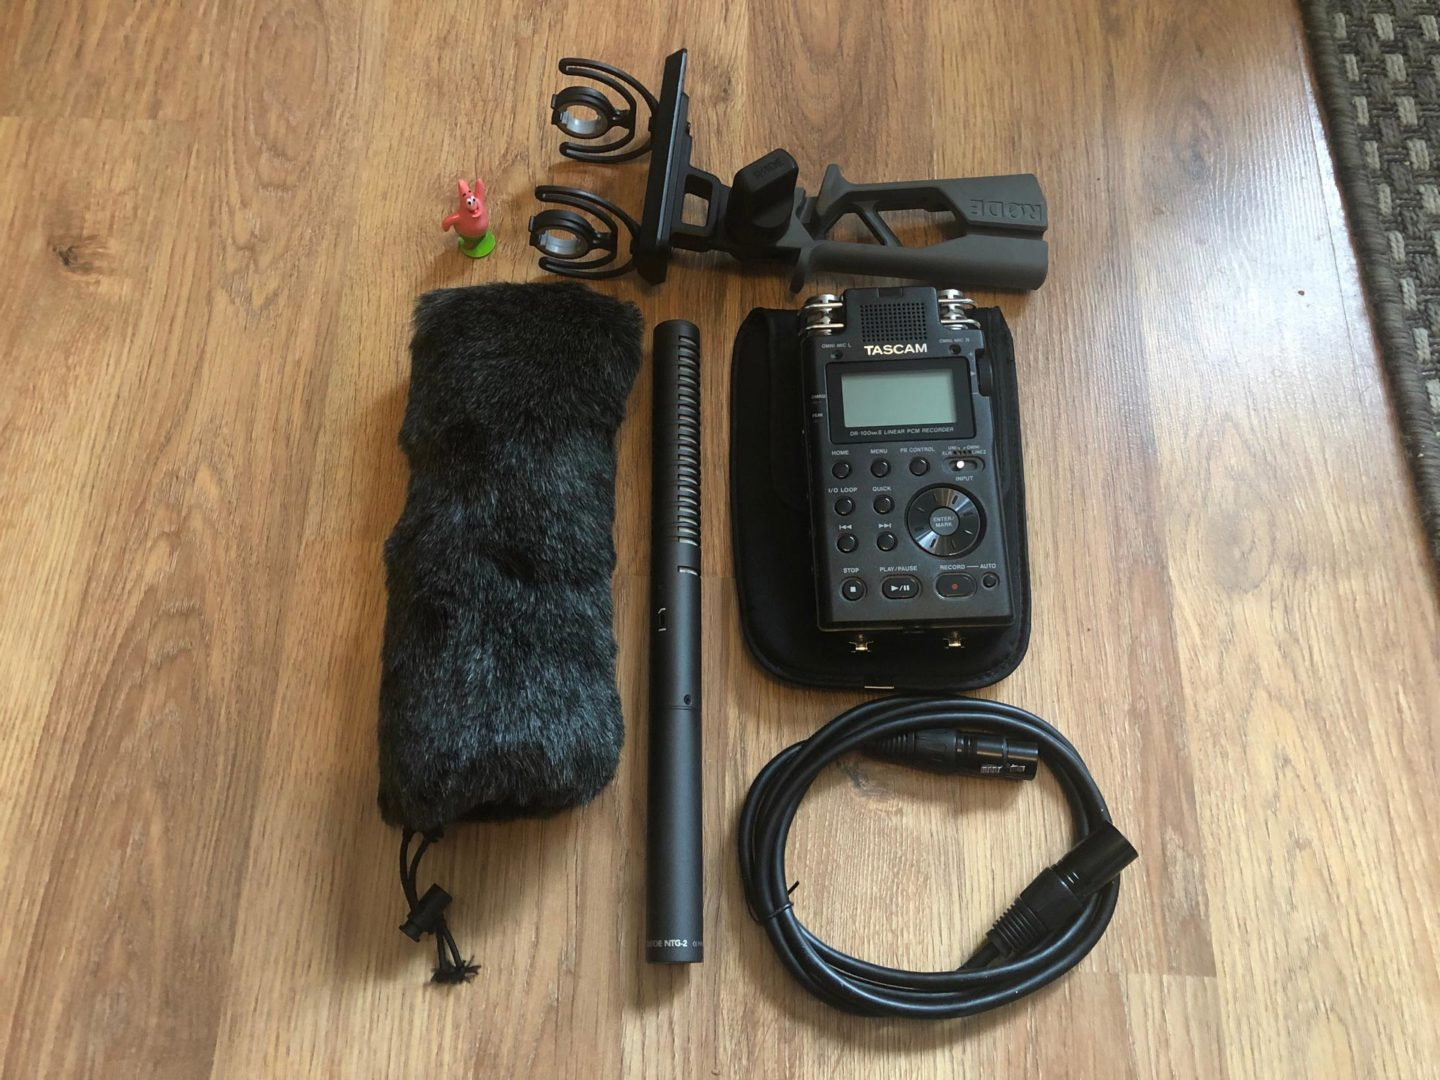 Rode NTG2 shotgun microphone and Tascam MK100 field recorder used for sound recording for Trip the Ark Fantastic.